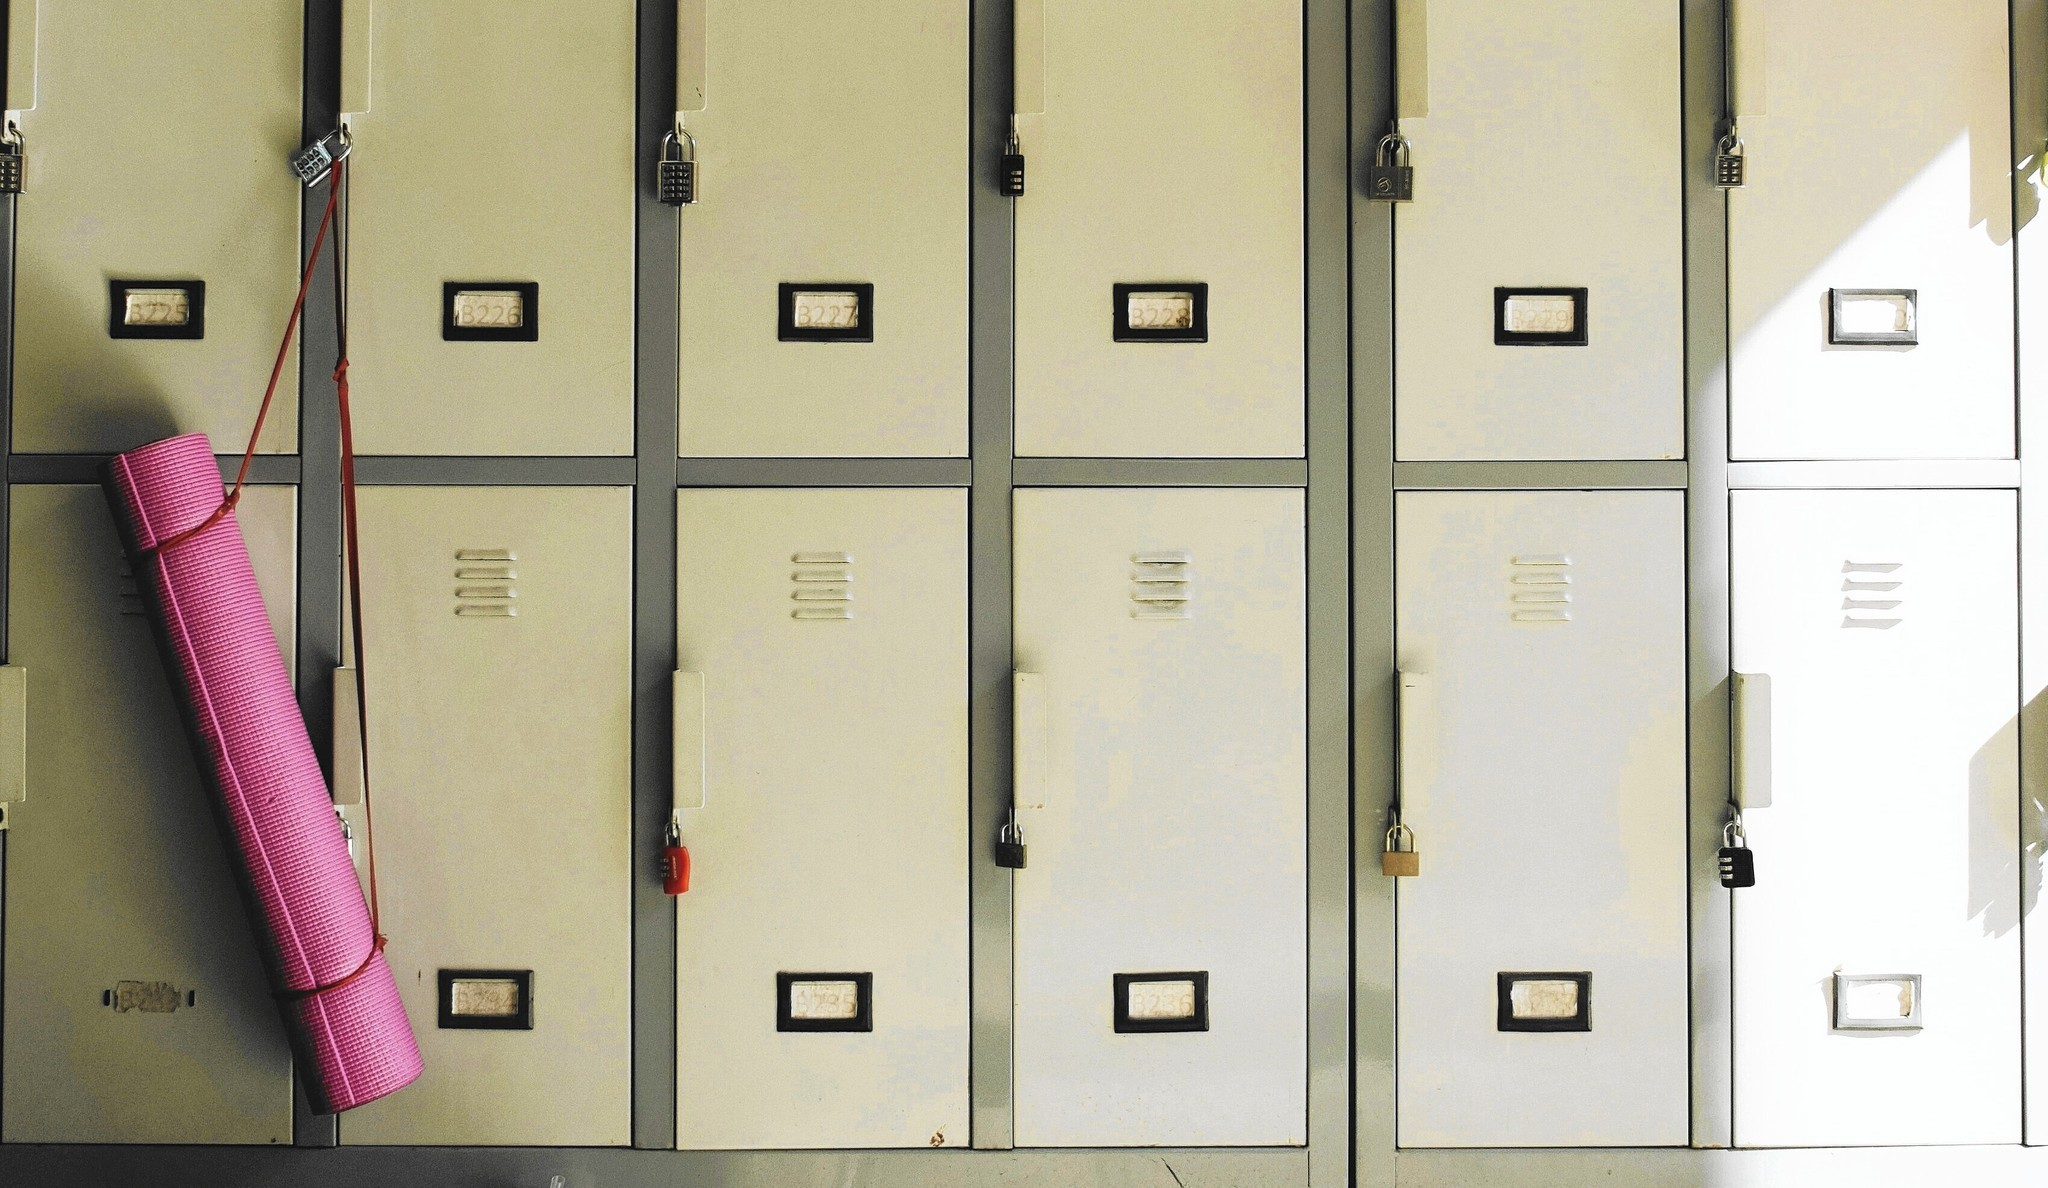 Transgender Kids And Locker Rooms: The Unwarranted Fears About Normal Access